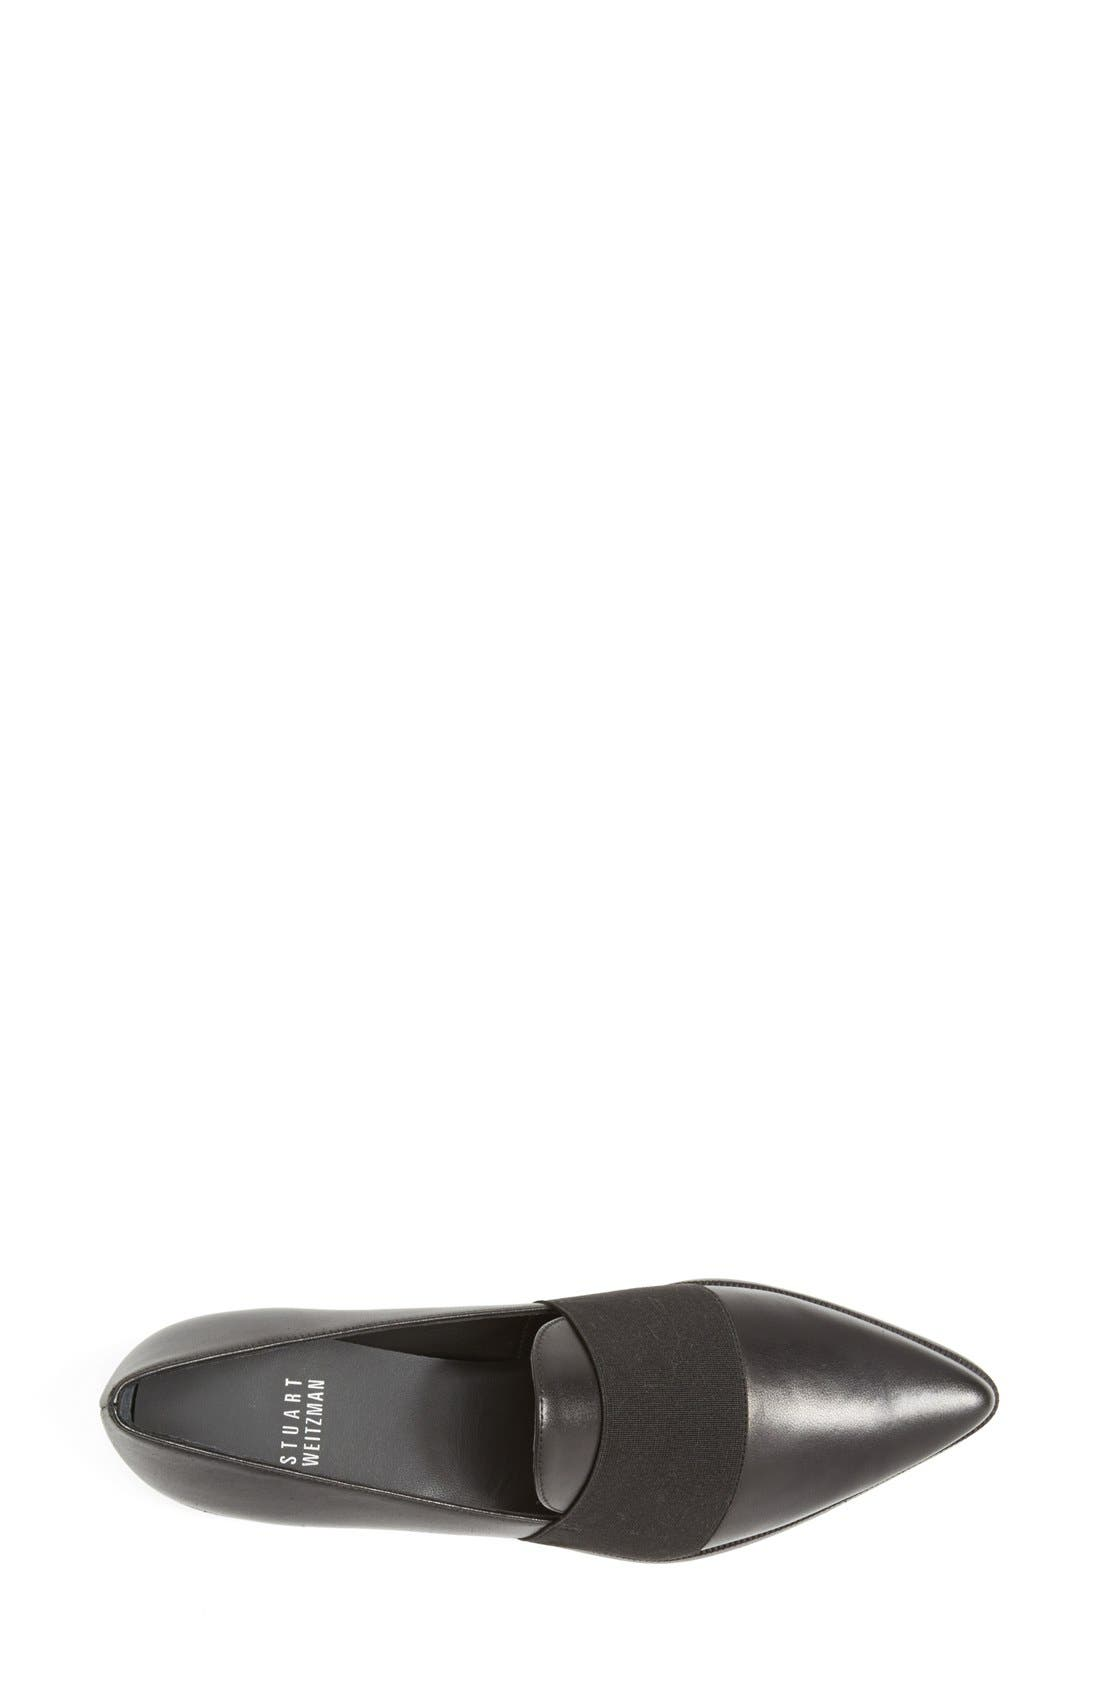 Alternate Image 3  - Stuart Weitzman 'The Band' Flat (Women)